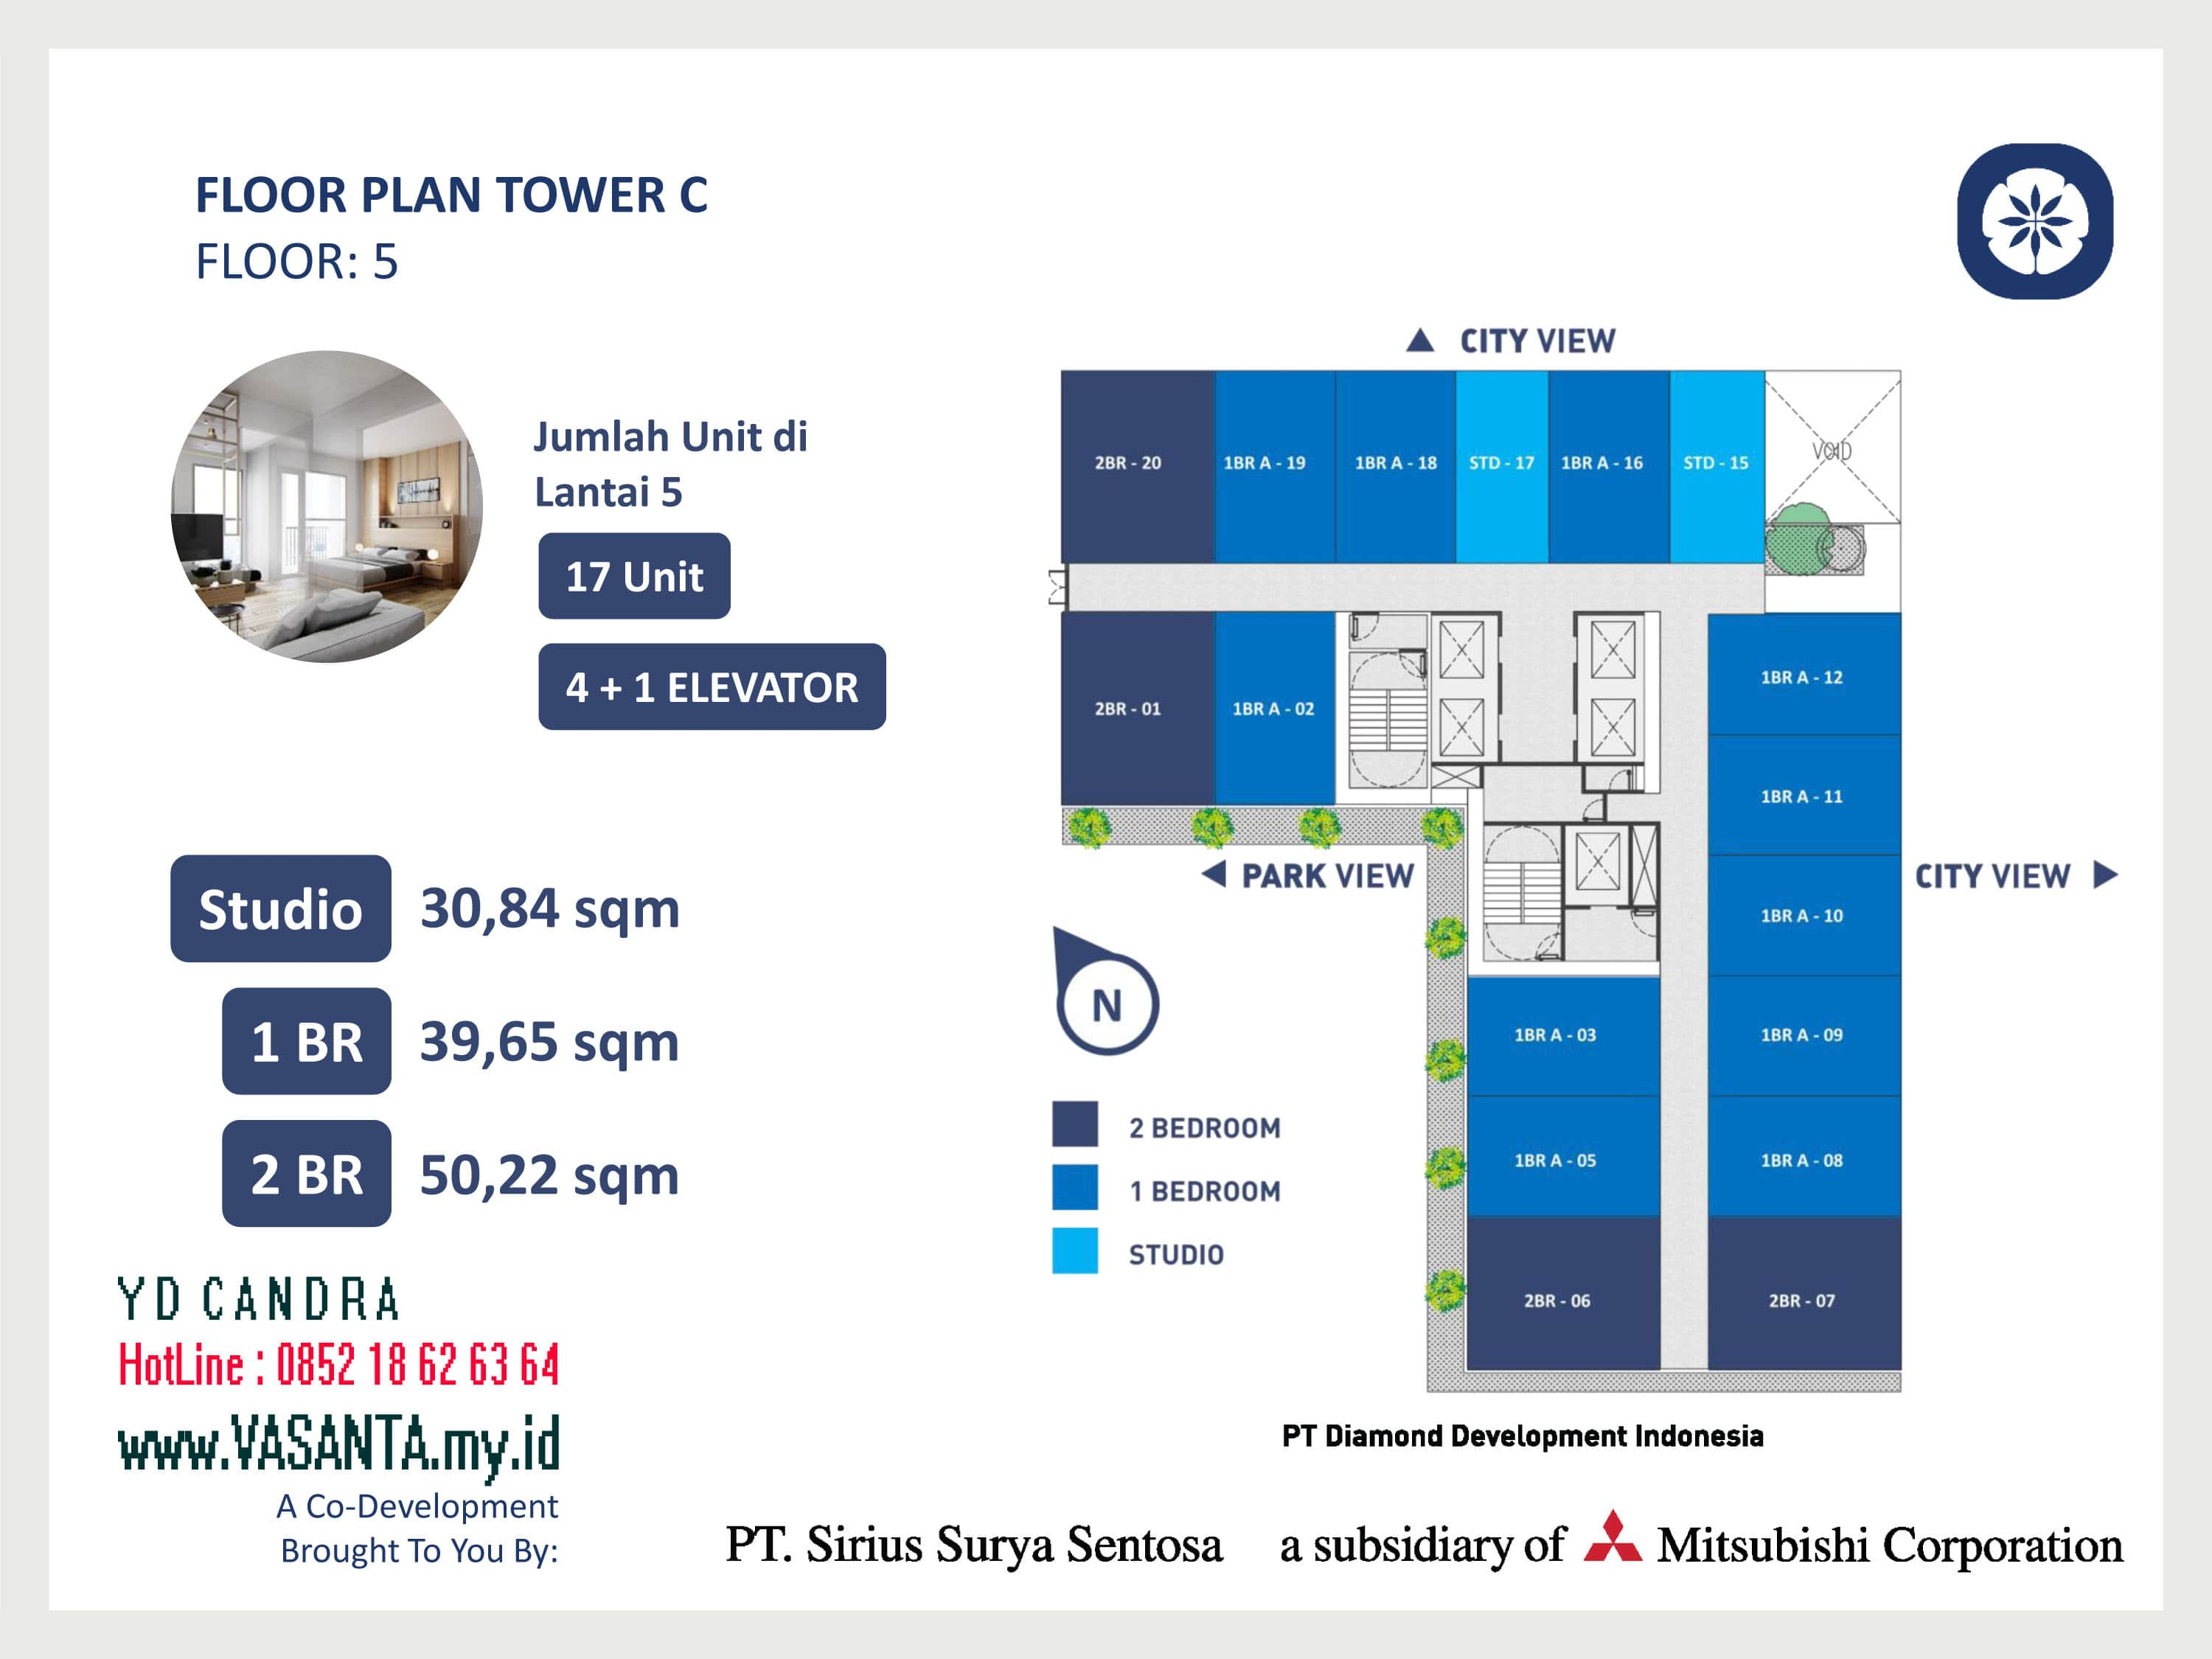 VASANTA Tower Chihana Floor Plan Tower C Floor 5